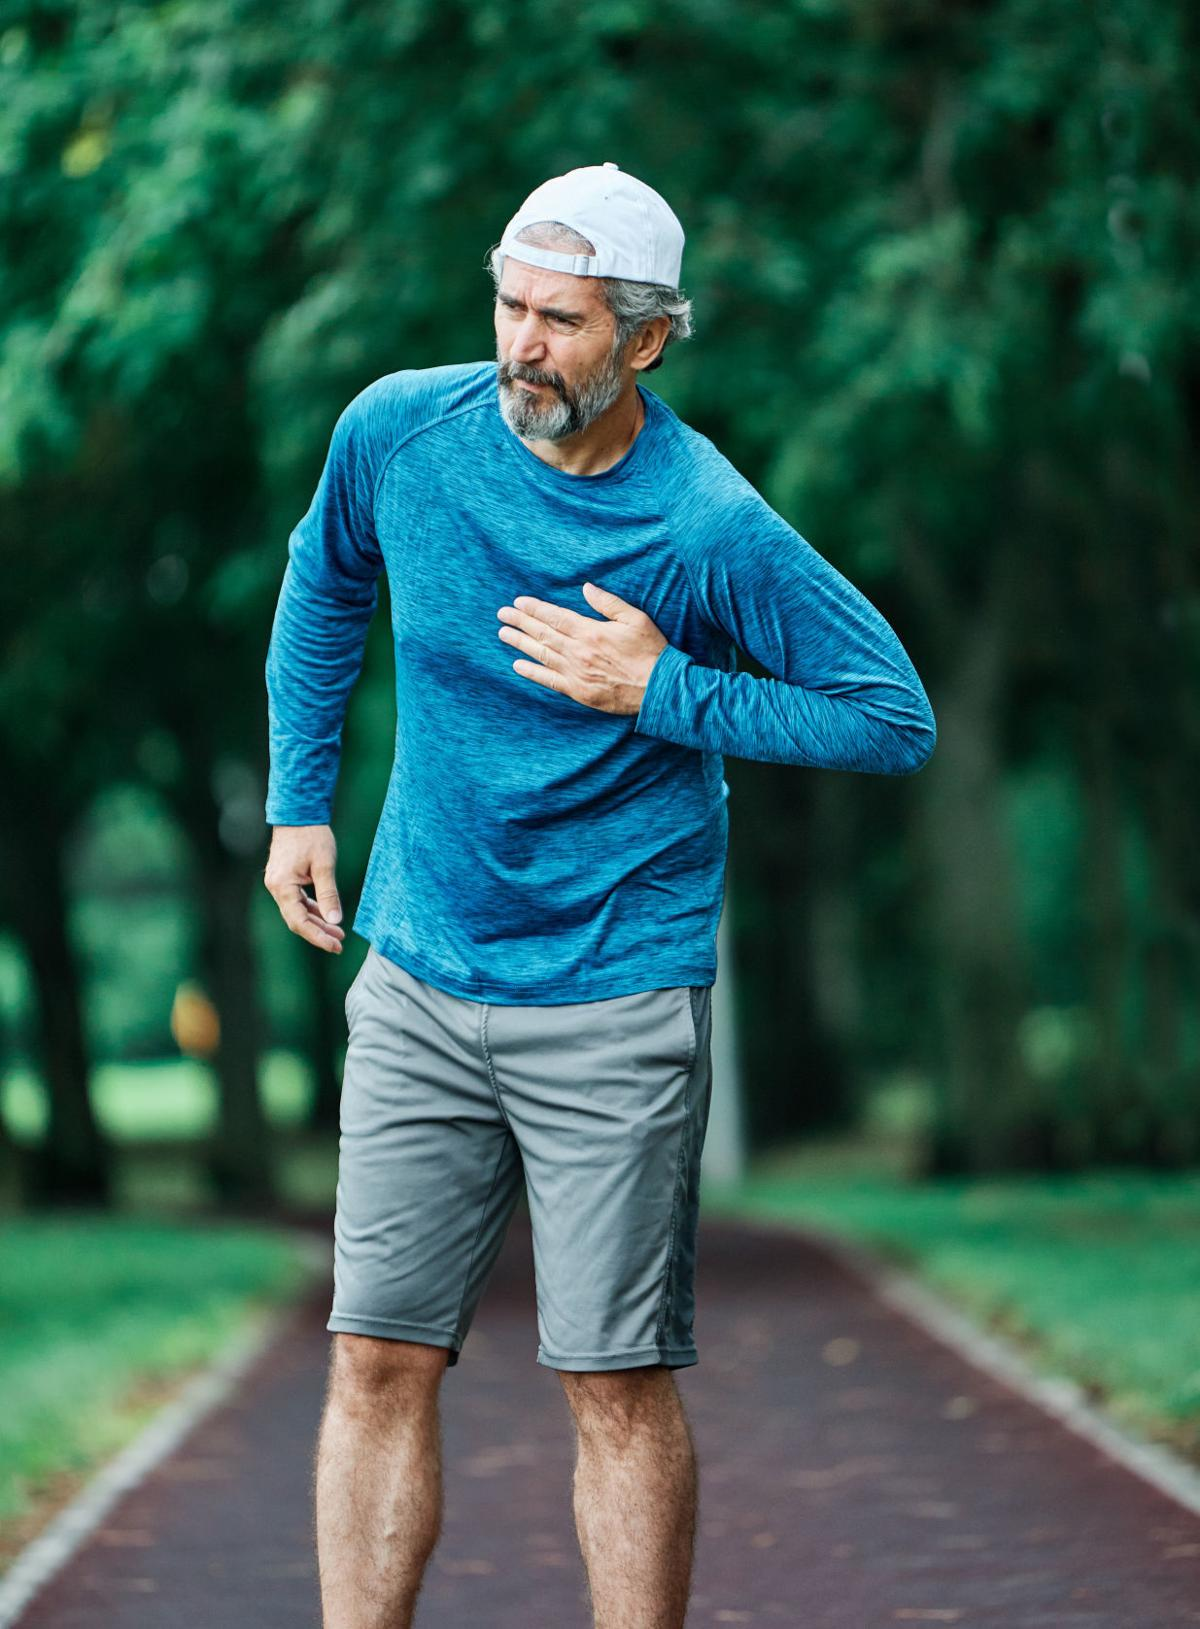 senior man running exercising sport fitness chest pain heart attack